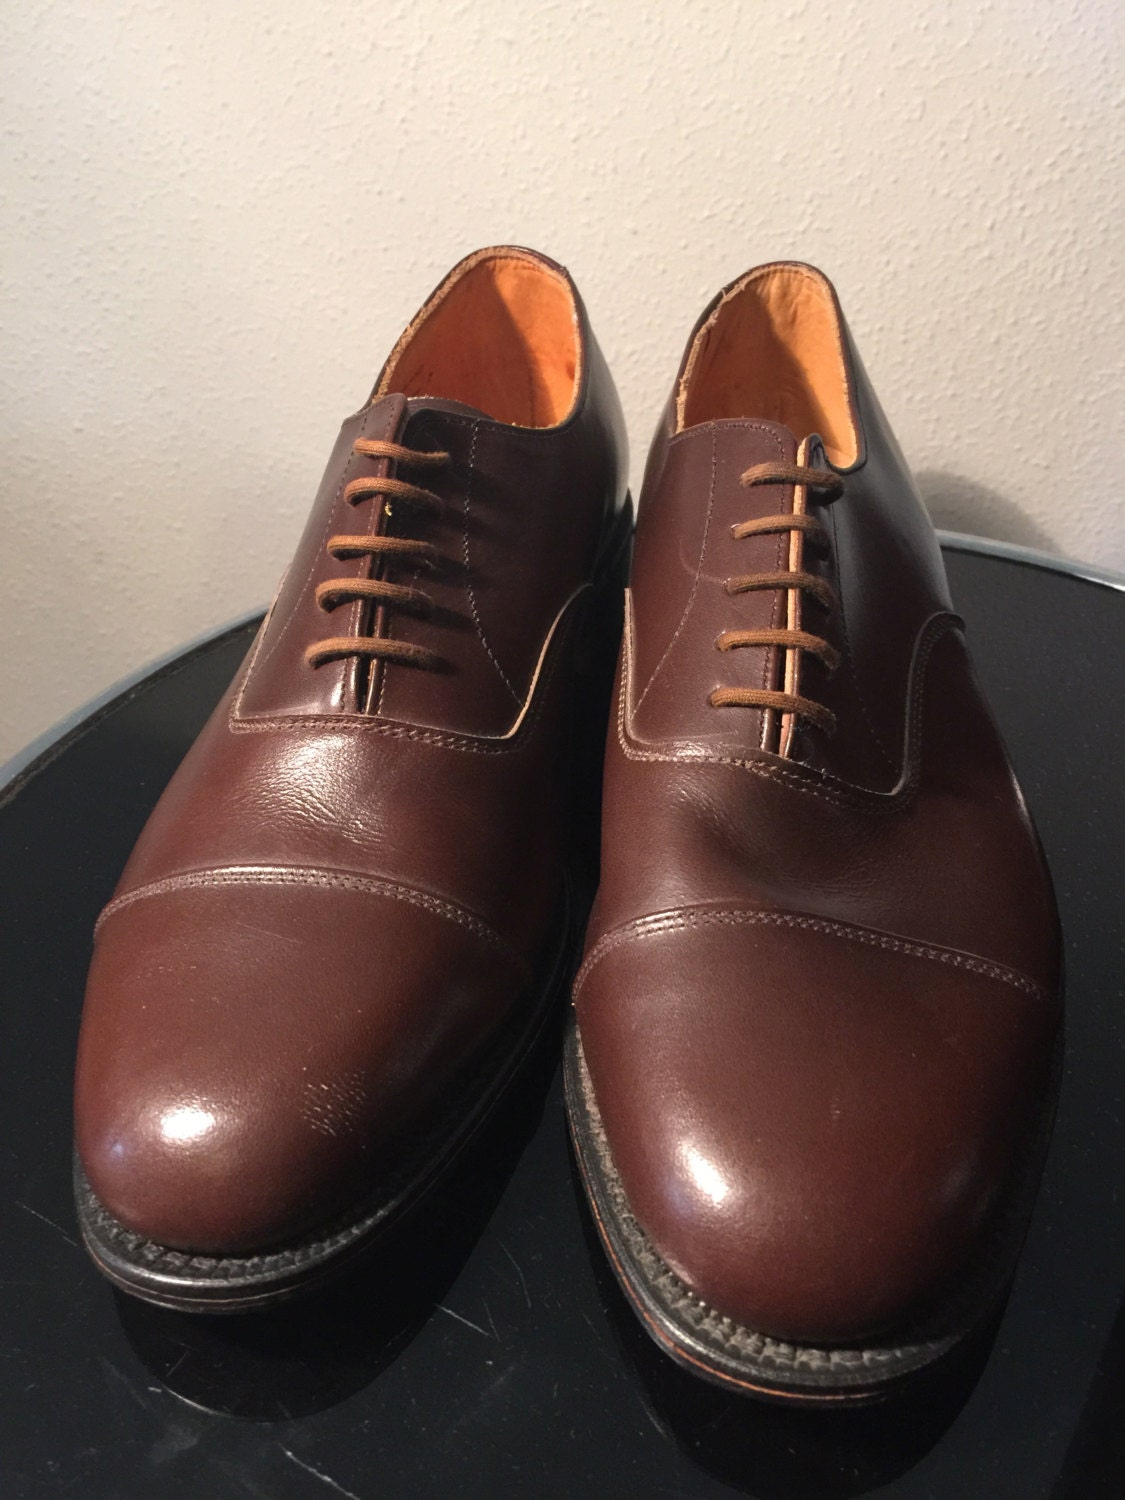 All and leather handmade English Holborn in Black and All choc brown,new old stock. 9bf543